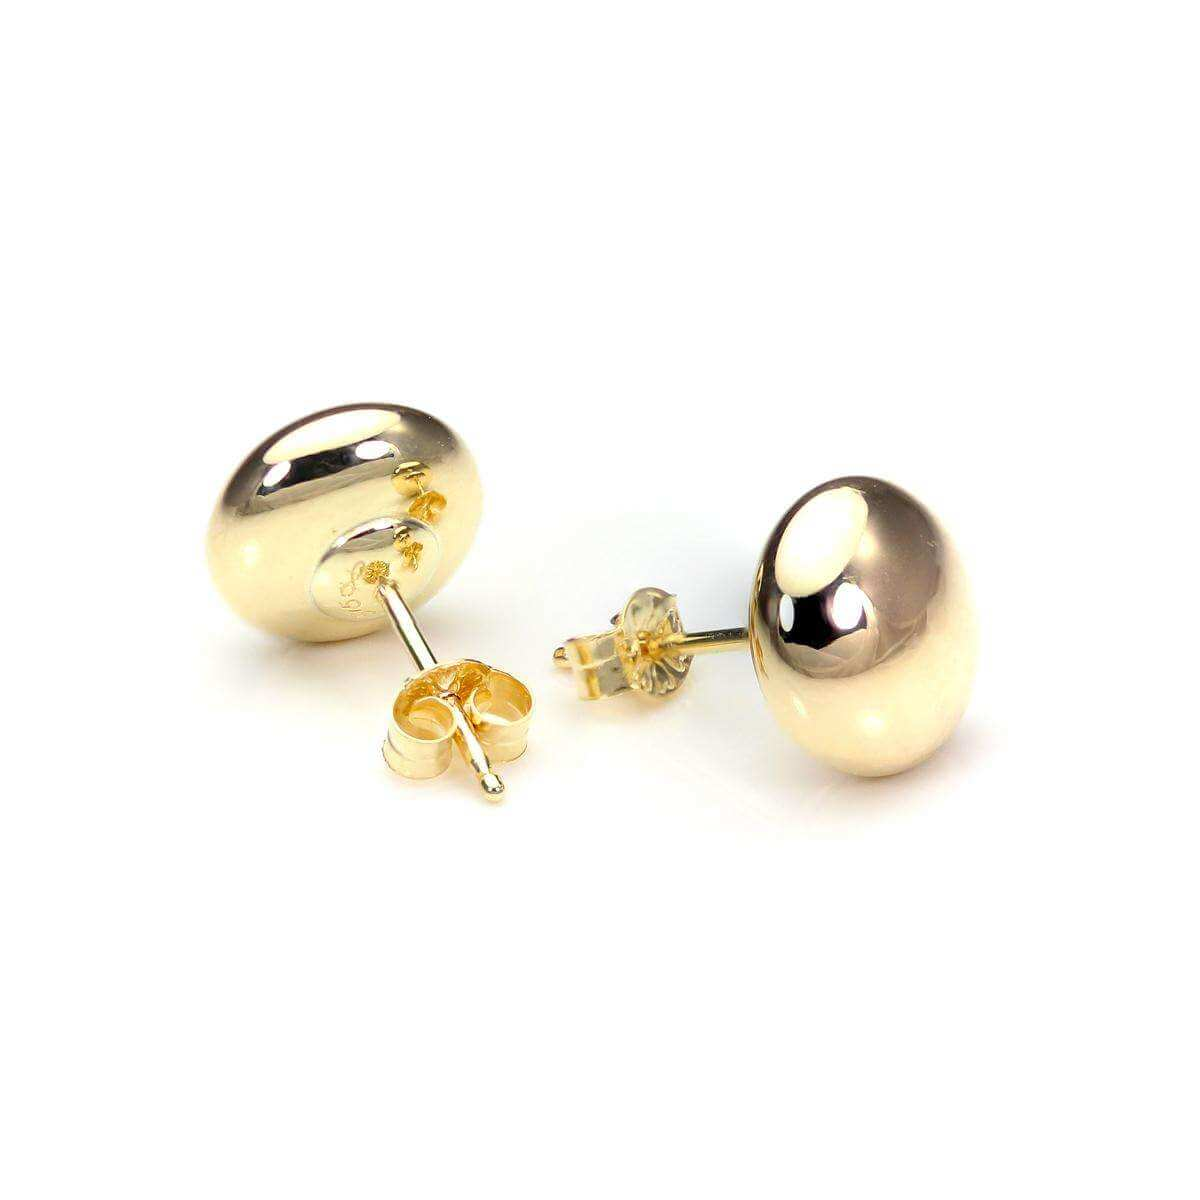 9ct Yellow Gold 7mm Plain Round Button Stud Earrings